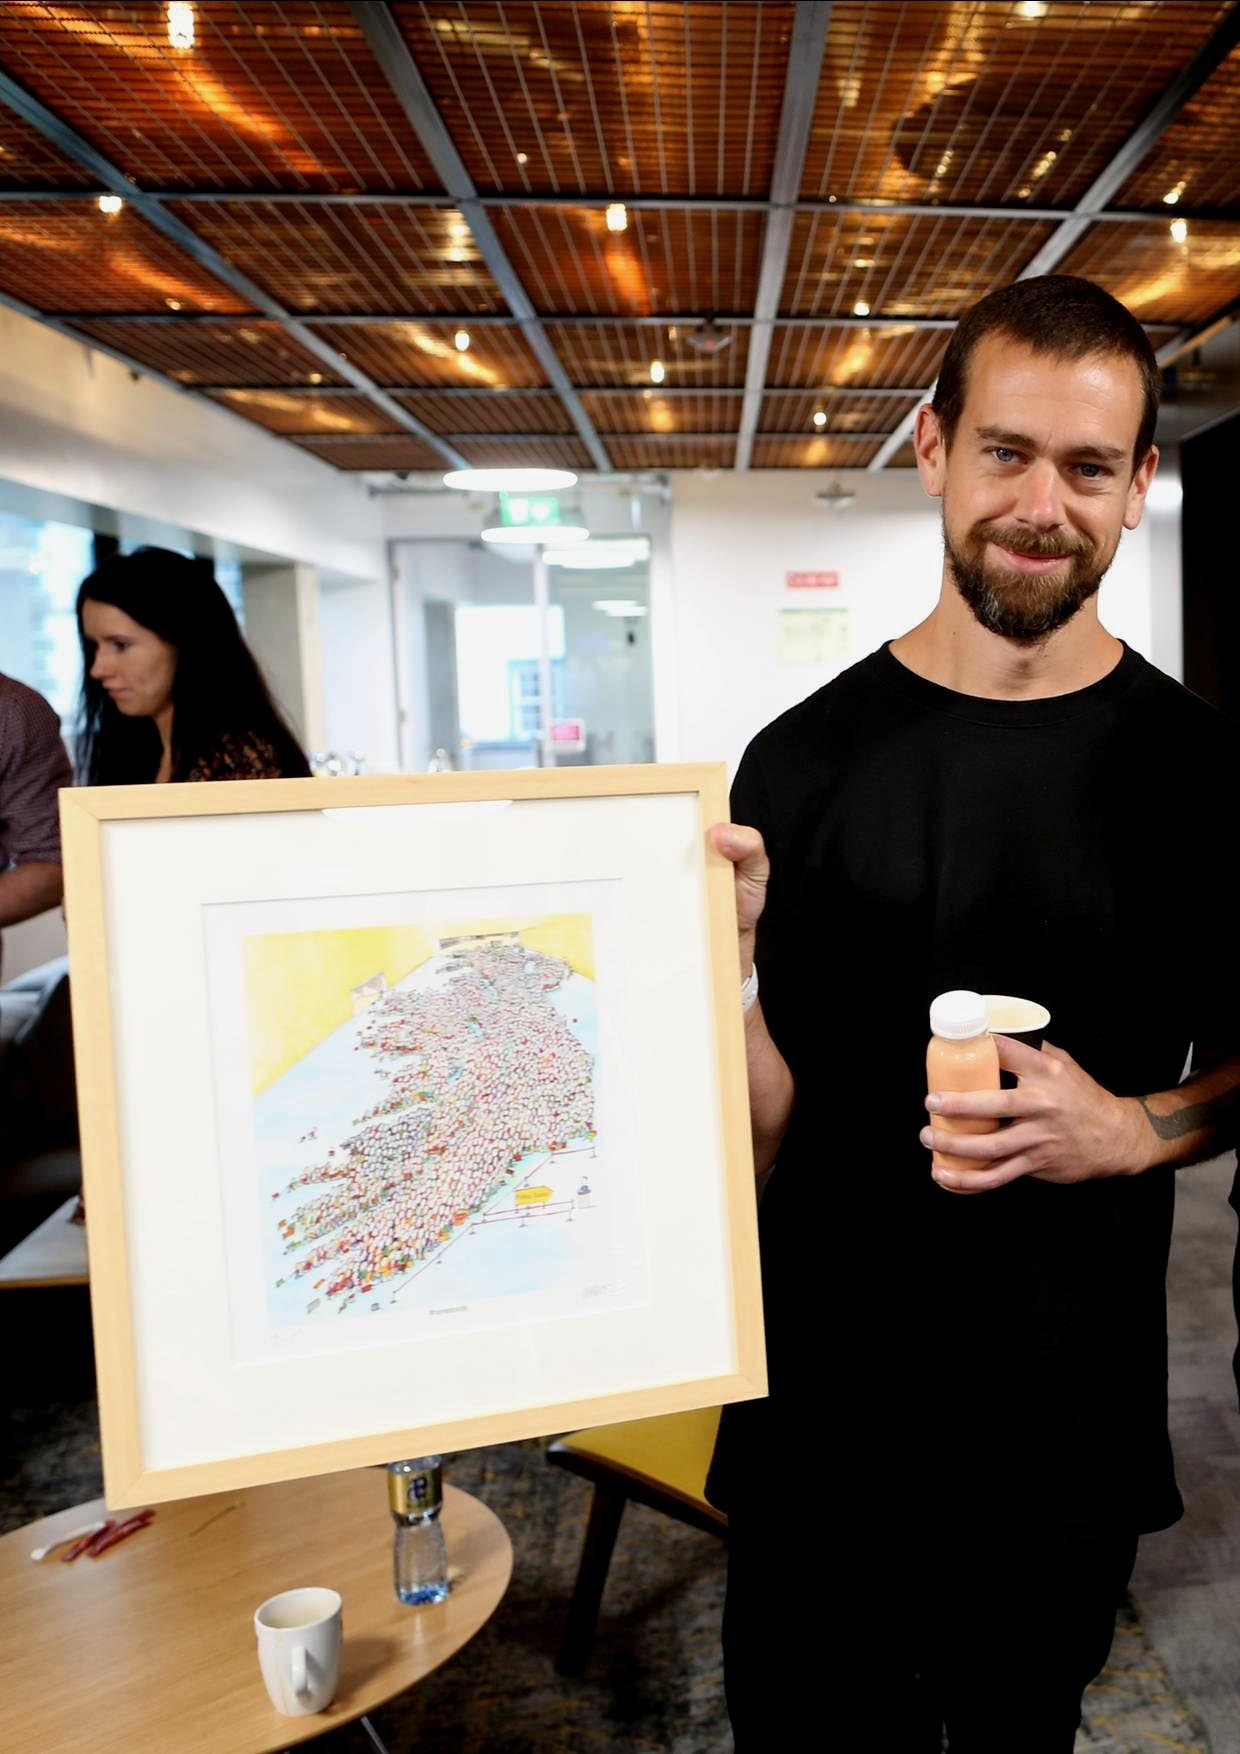 Jack Dorsey with his present @Twitter HQ